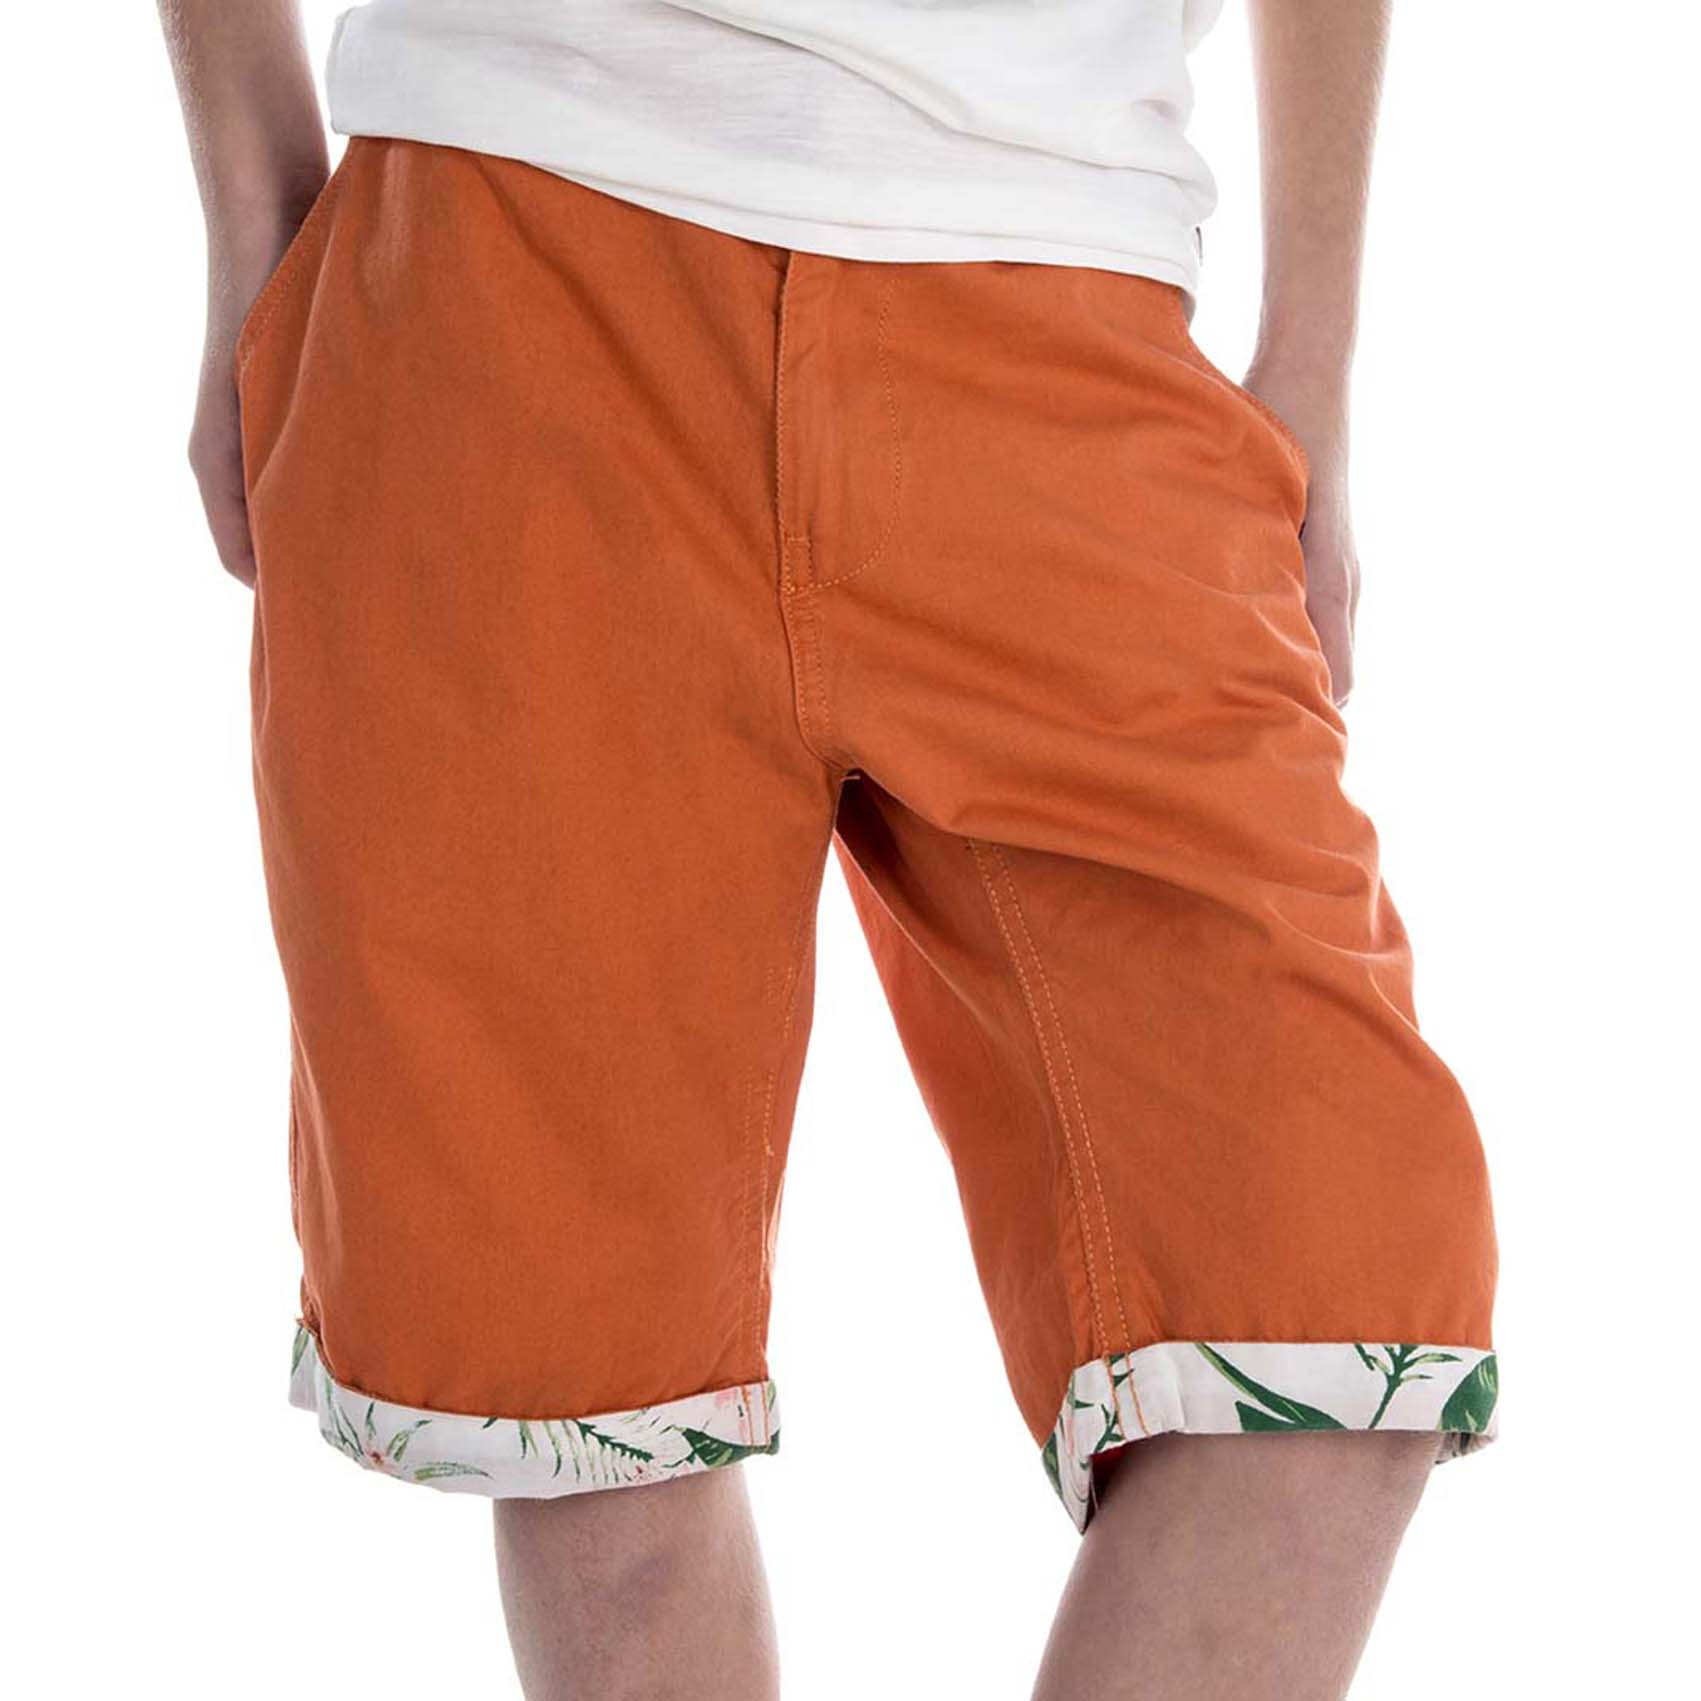 Short bermudas freegun orange et blanc (photo)